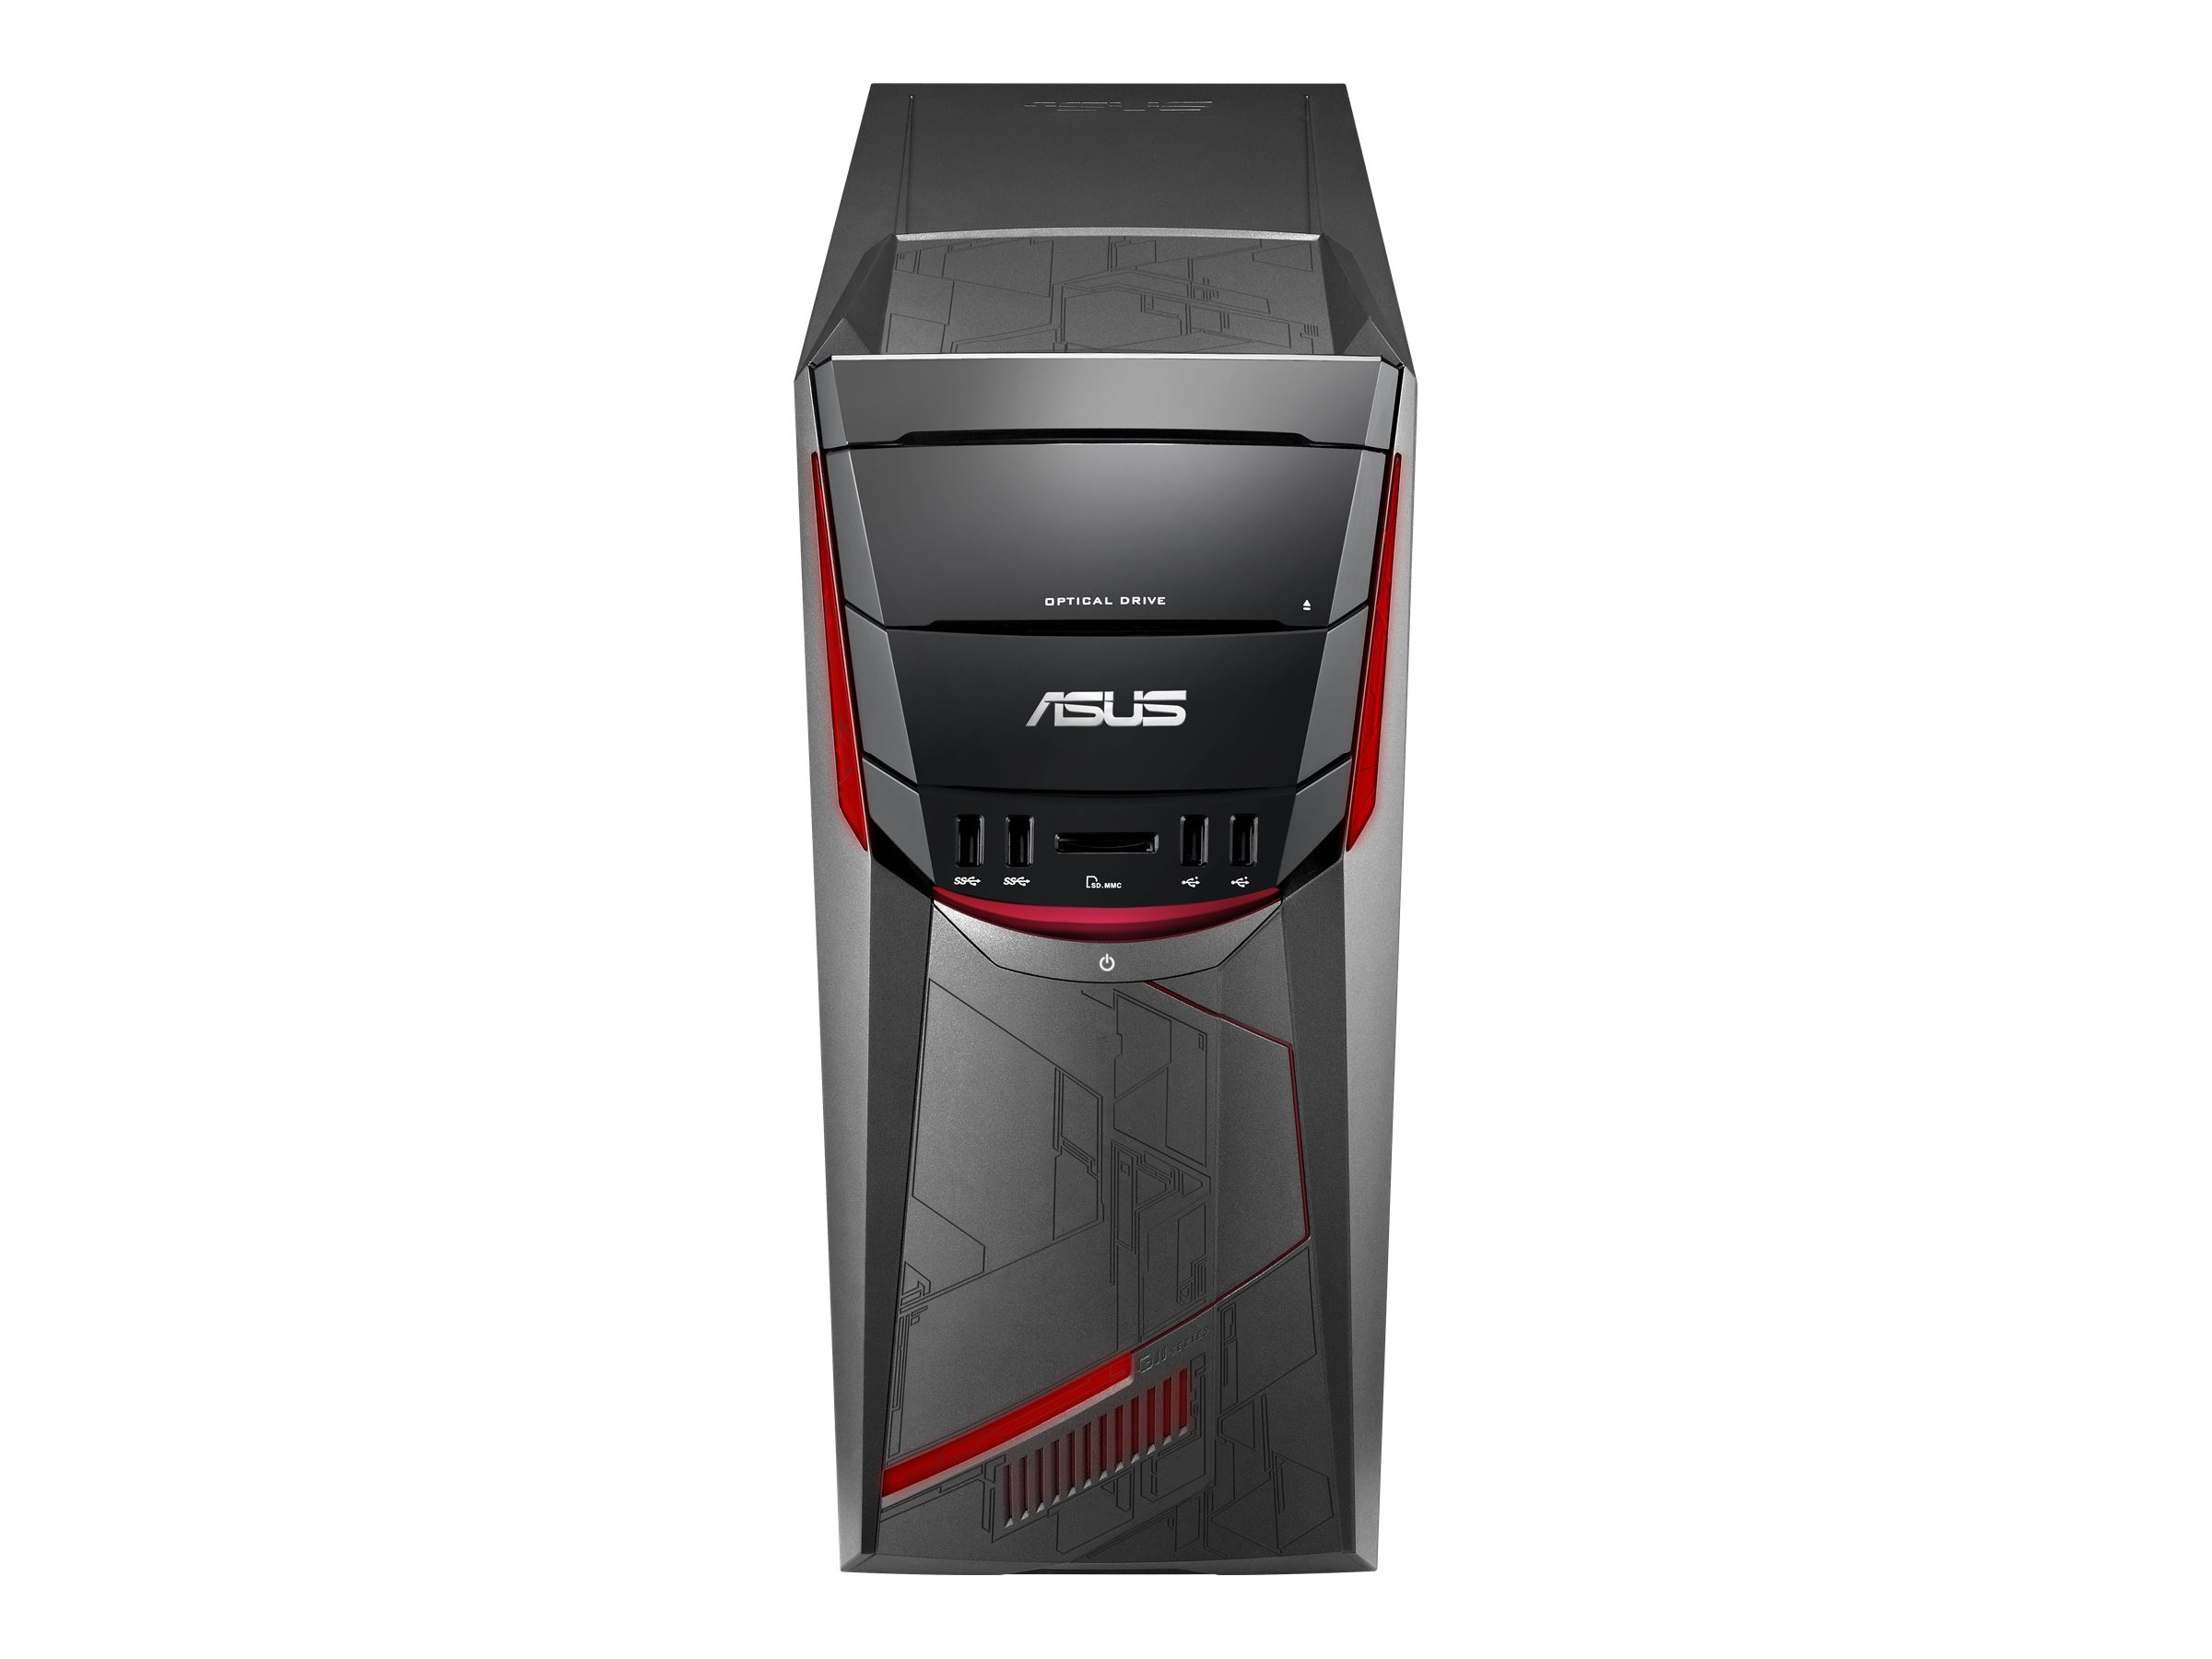 Asus Desktop Core i7-6700 16GB 512GB W10, 90PD01L1-M08580